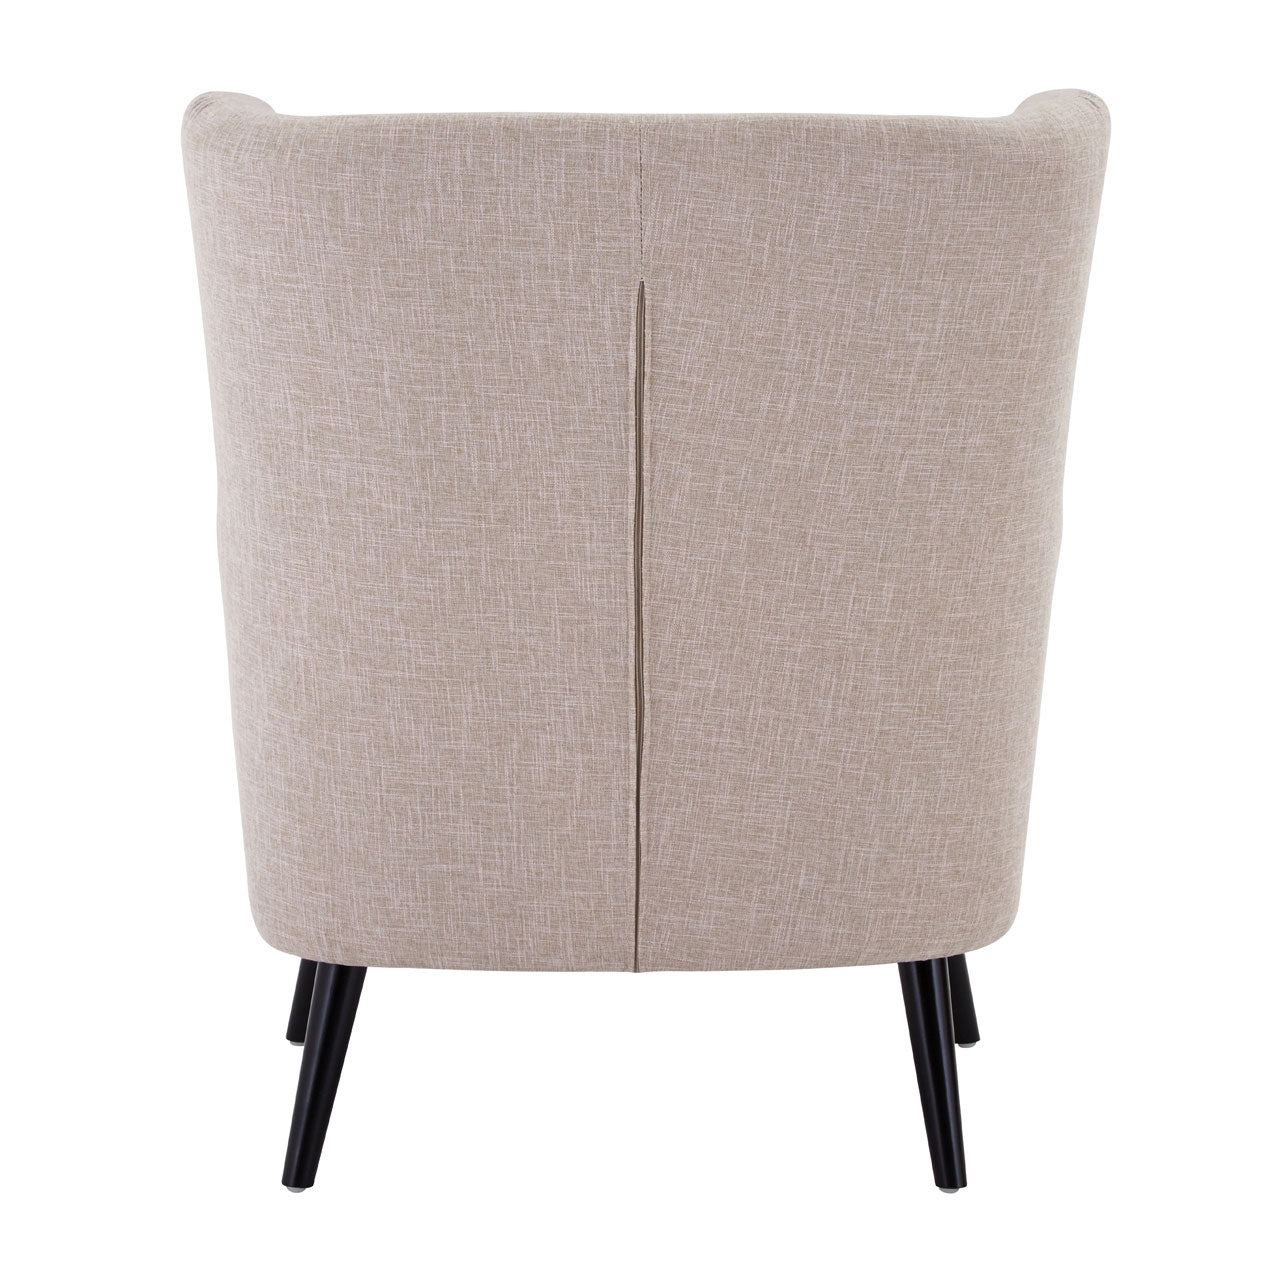 Odense Armchair in Natural